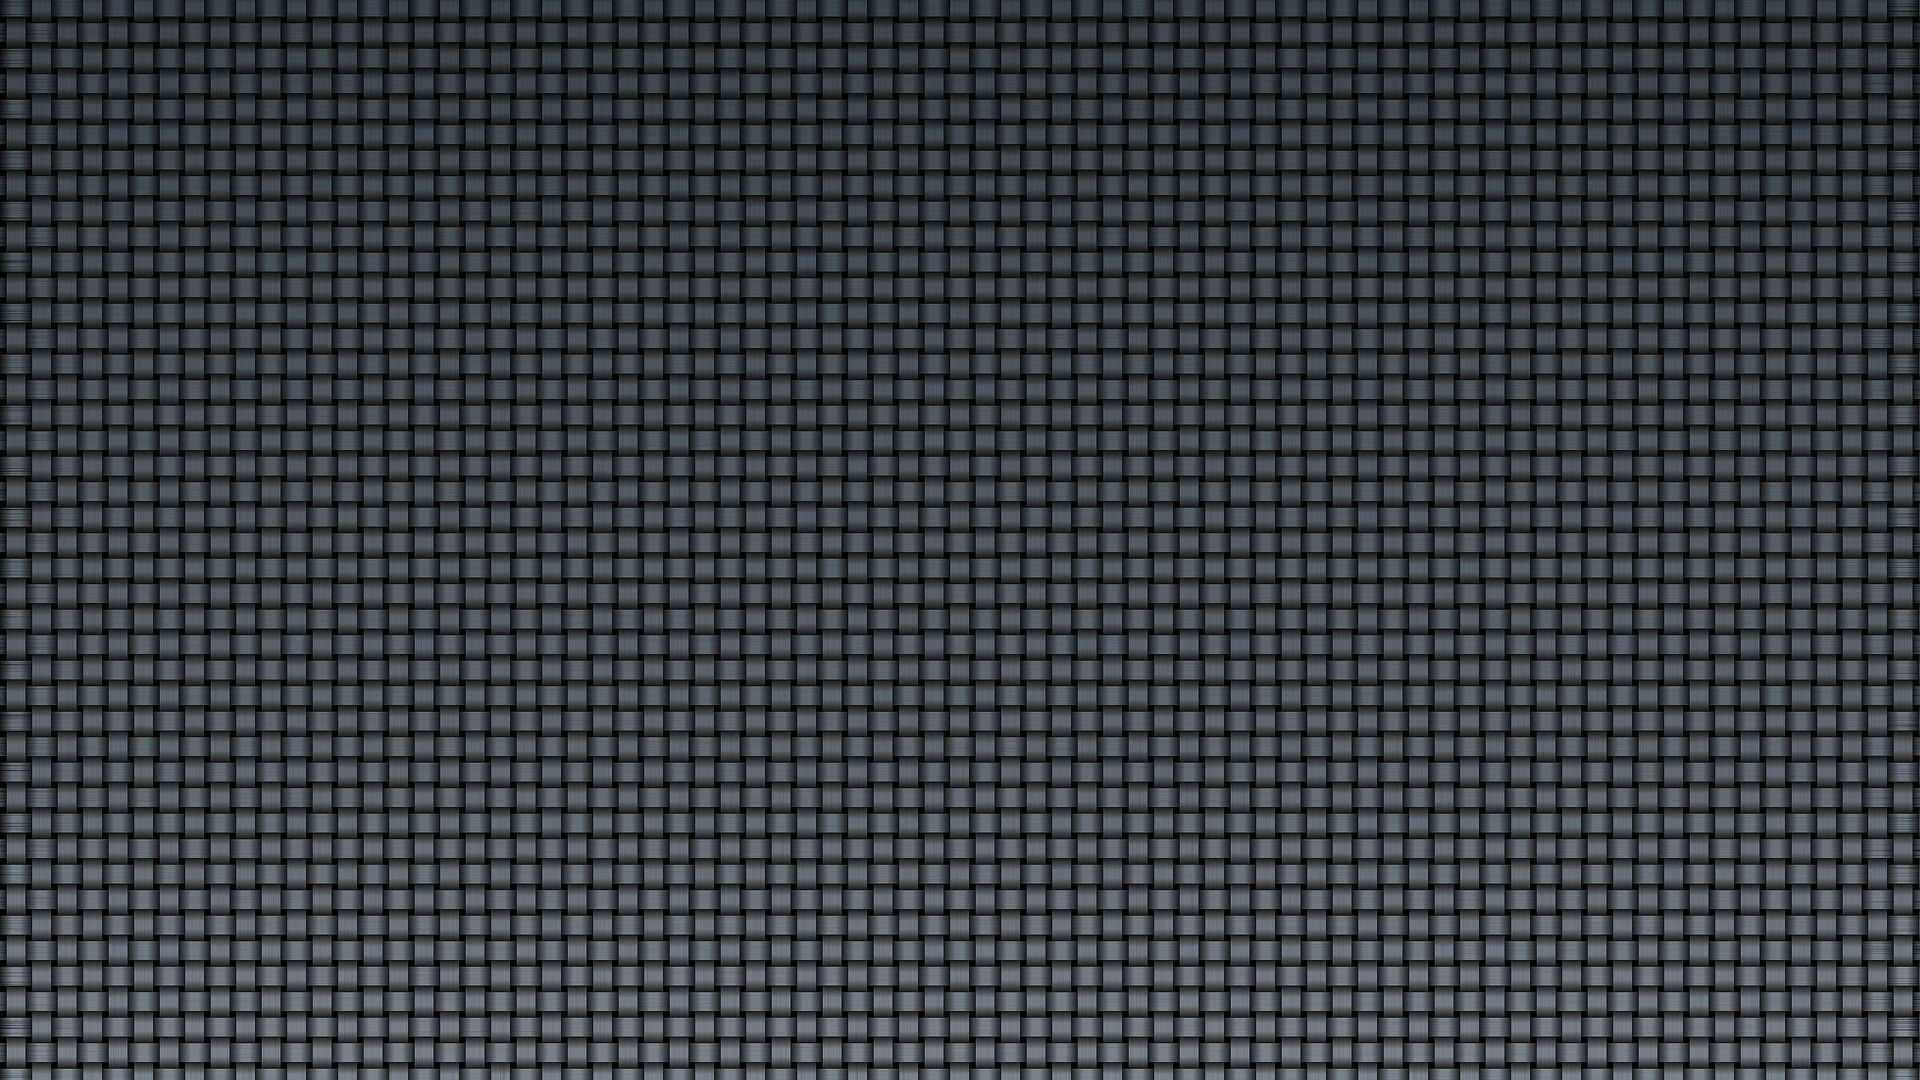 pin grey lines wallpaper - photo #42